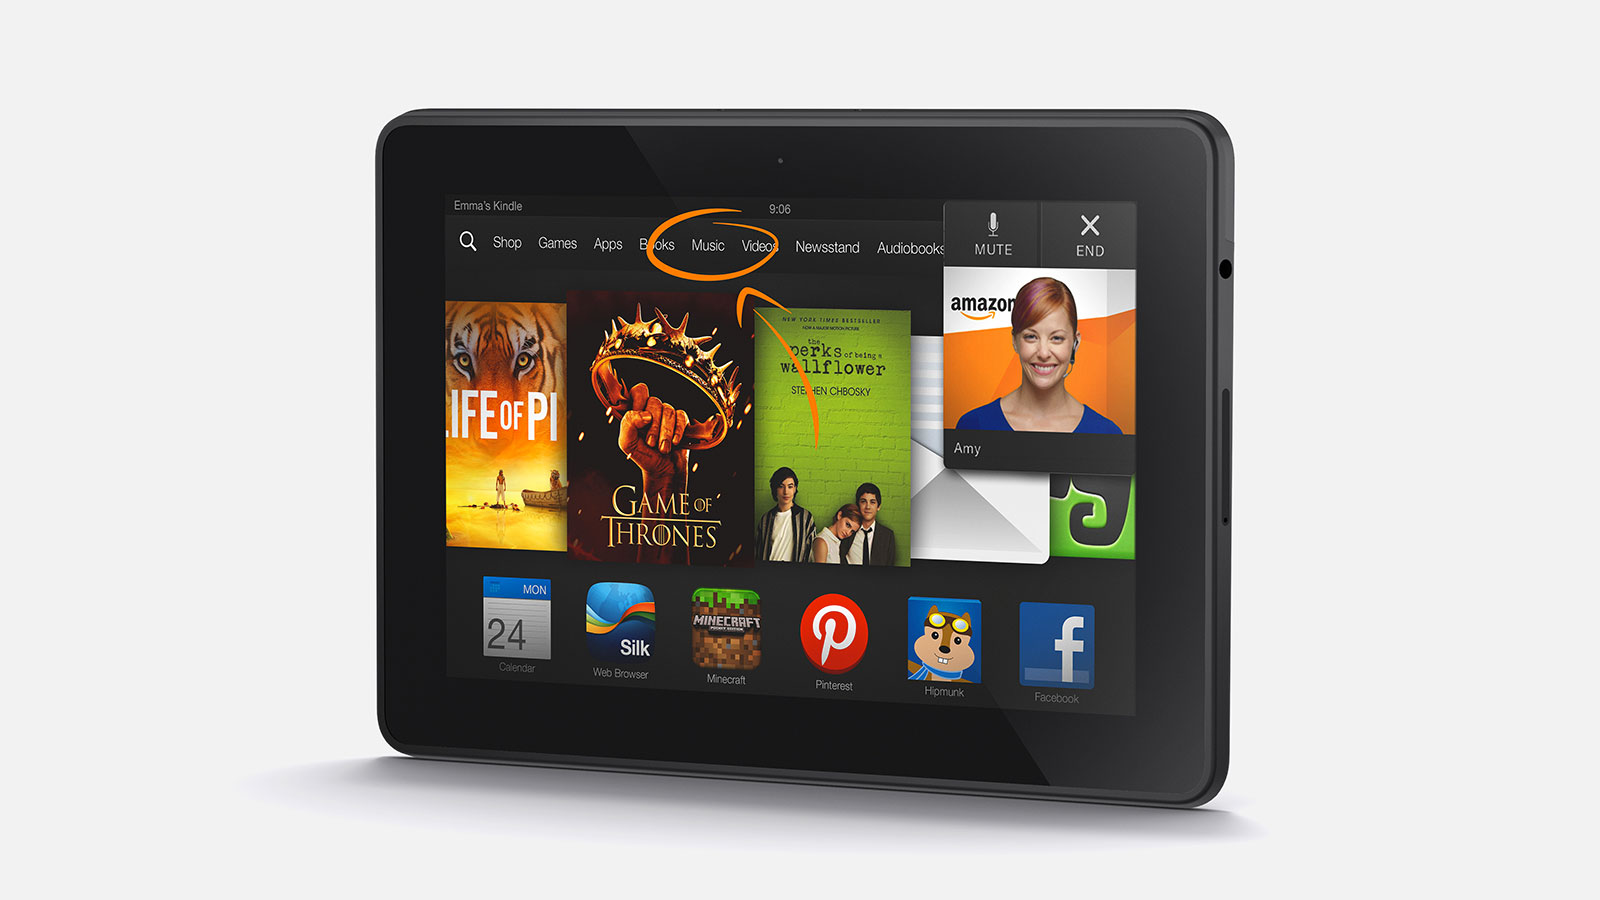 Nieuwe Kindle Fire HDX van Amazon heeft superscherm 1600x900